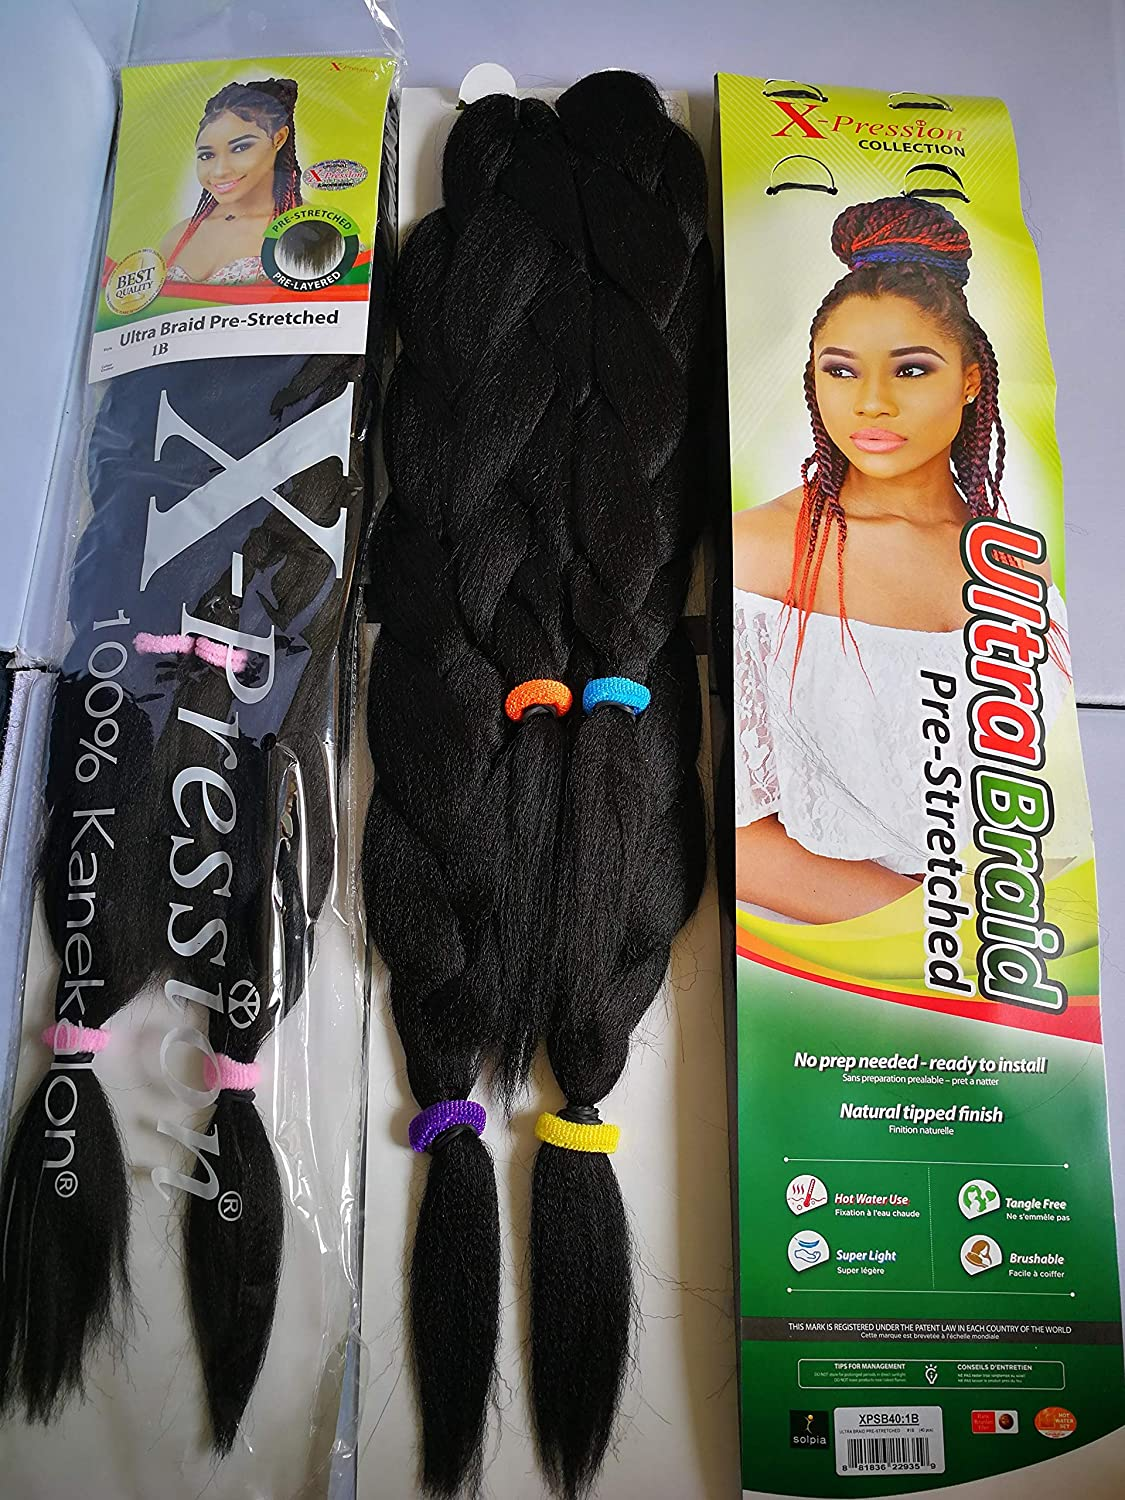 UK: Time Saving. X-Pression Pre Stretched Braid X11 Ultra Super Braiding  Bulk Hot Water Seal Braid. Hair Extension. Pre-Cut, Pre-Layered